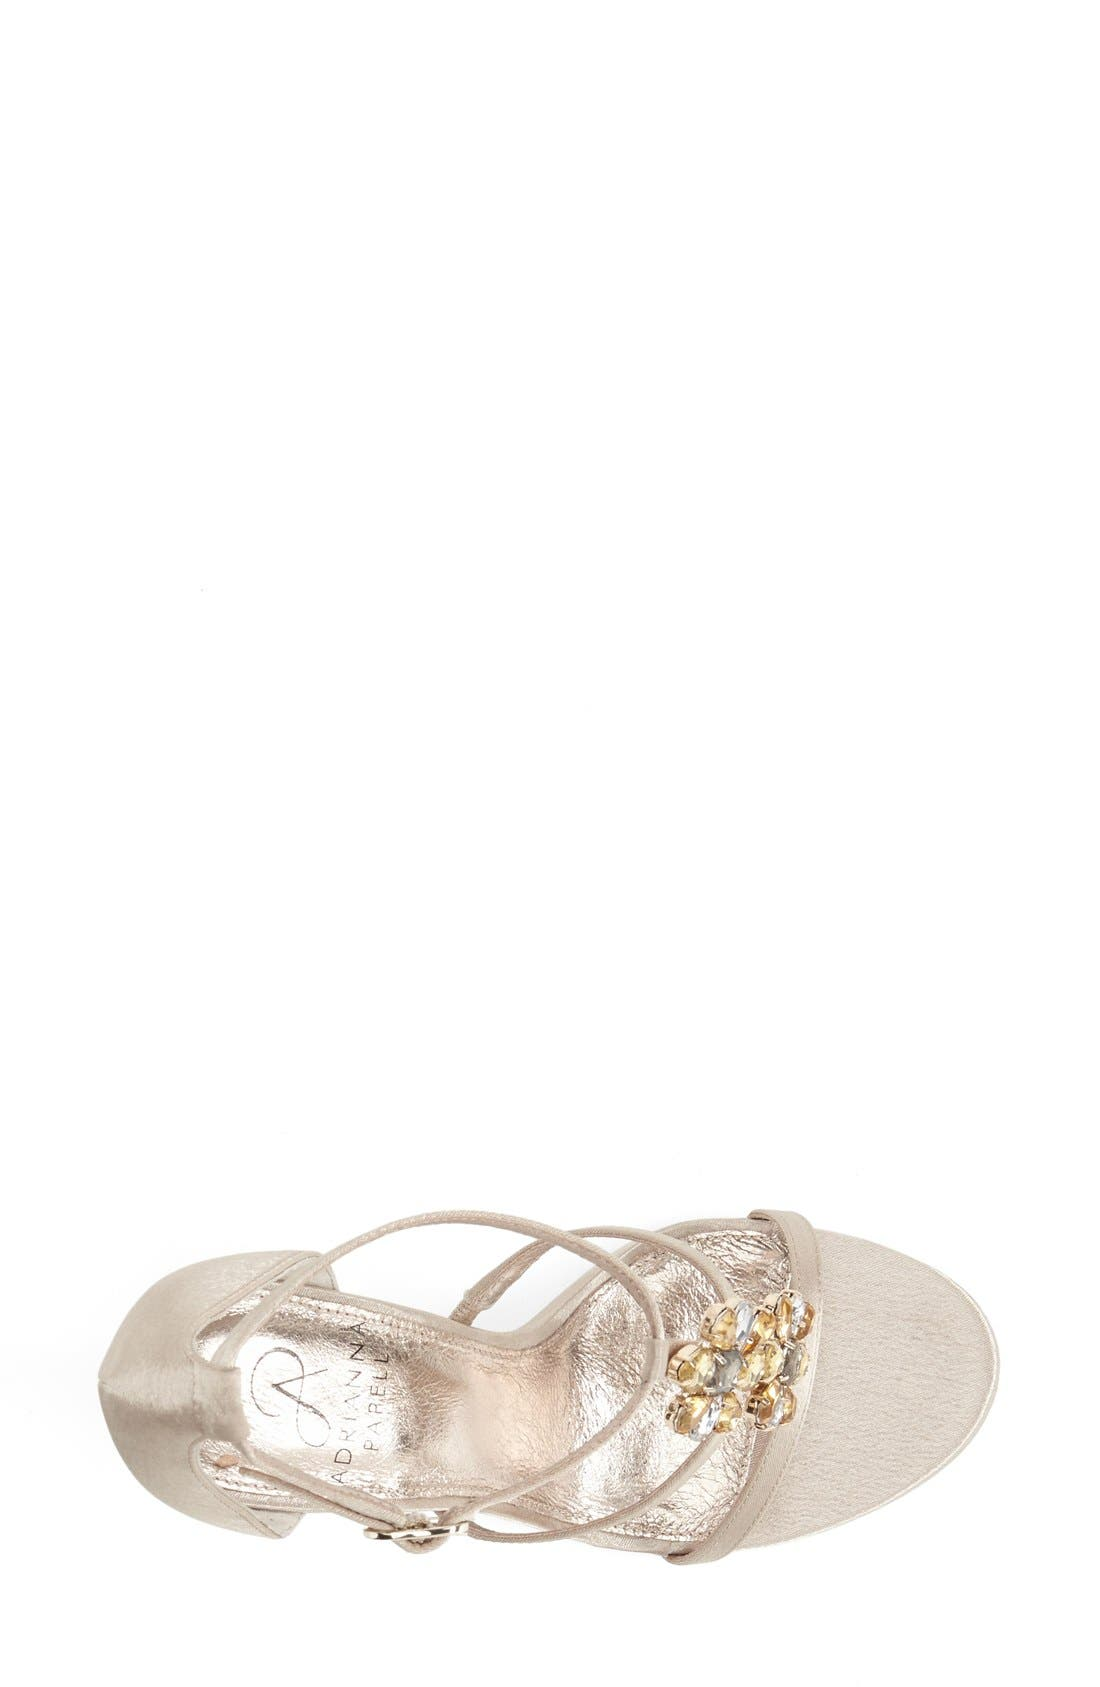 Alternate Image 3  - Adrianna Papell 'Daphne' Jeweled Strappy Sandal (Women)